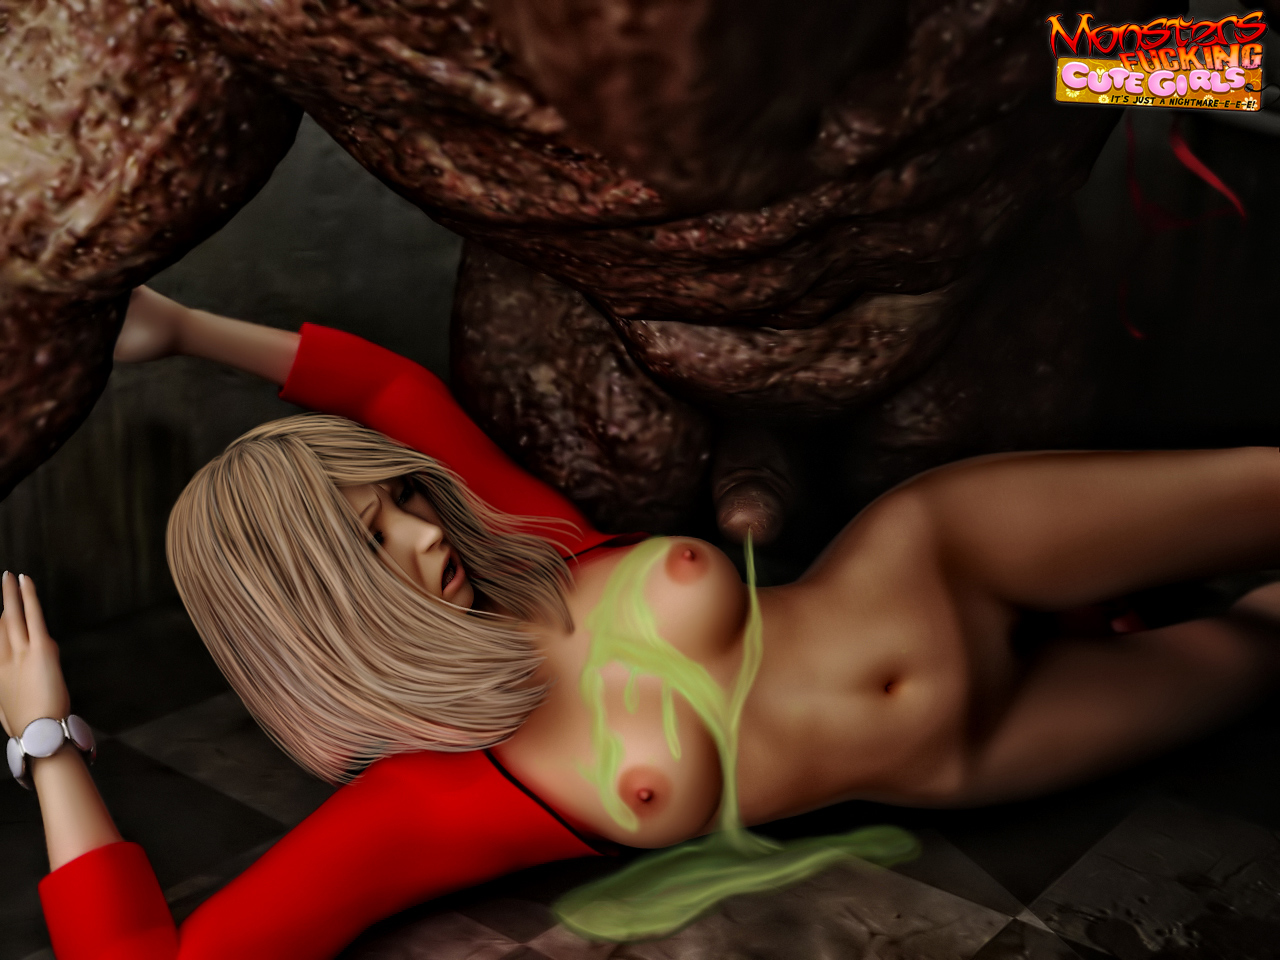 Monster girl anime sex pics naked picture